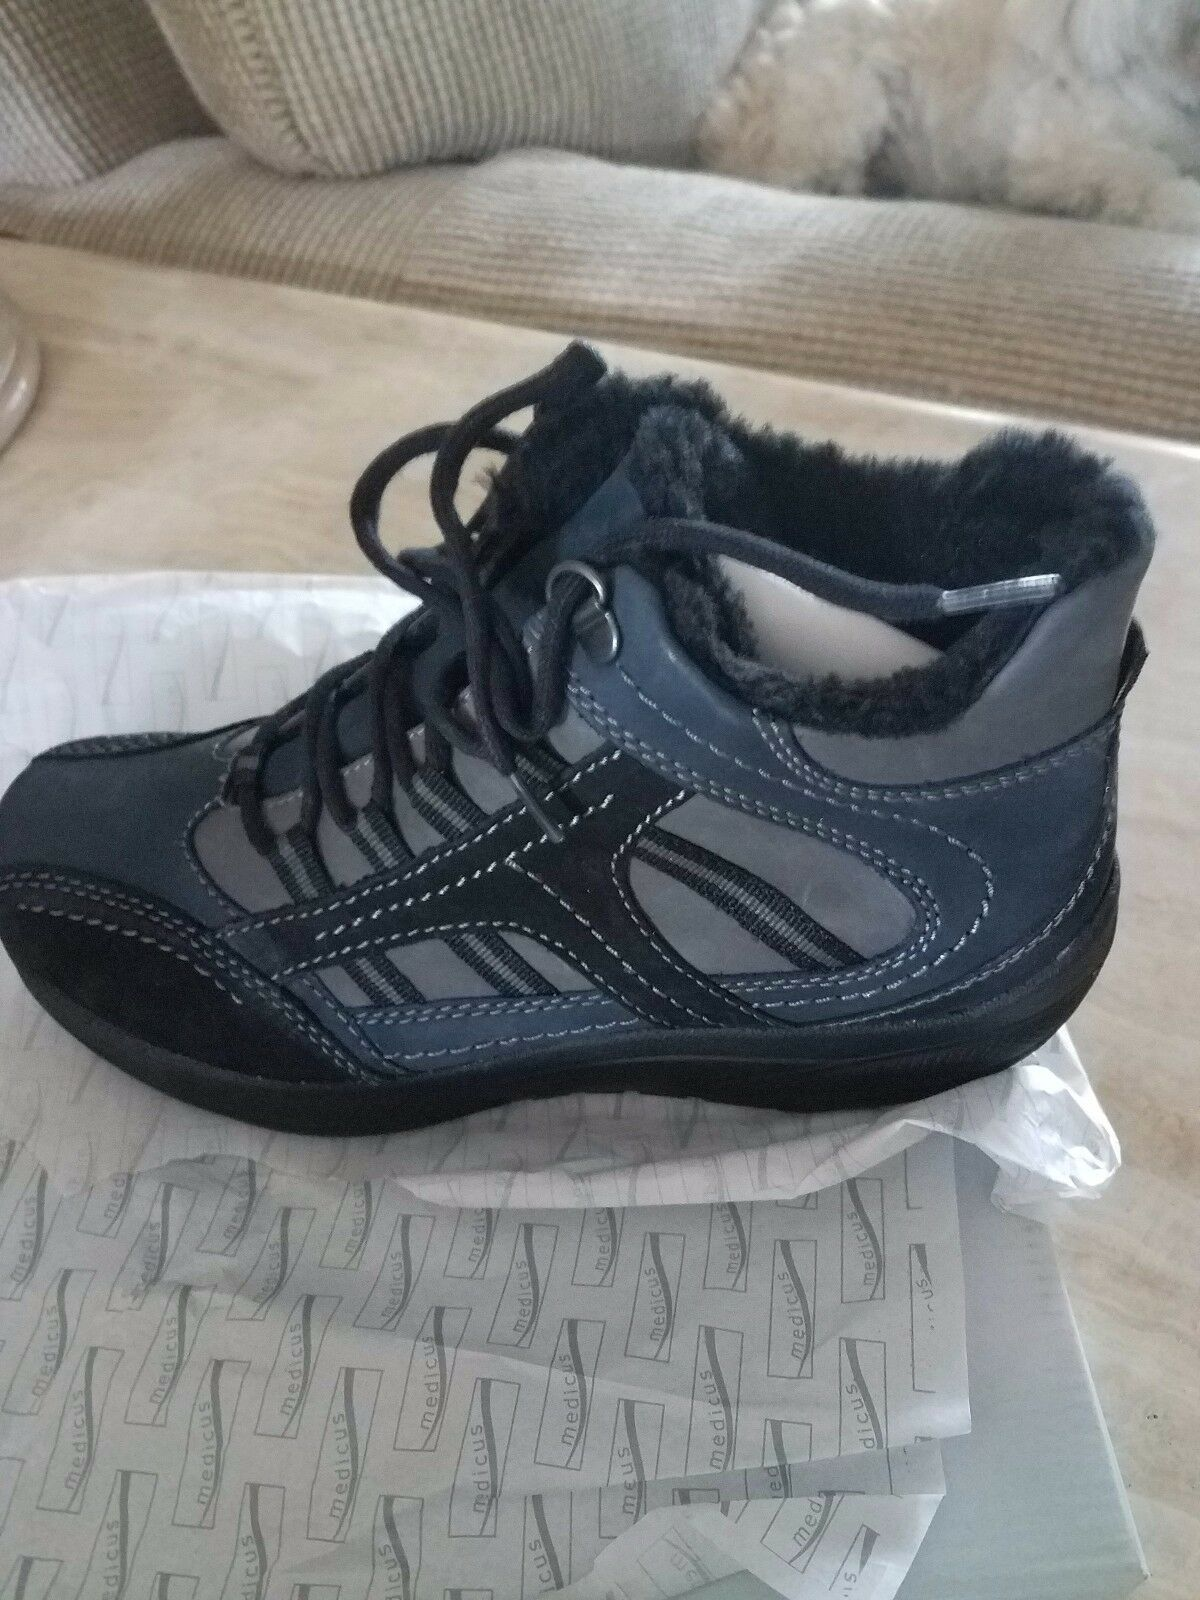 Women's Hiking Boots. 8M, Medicus